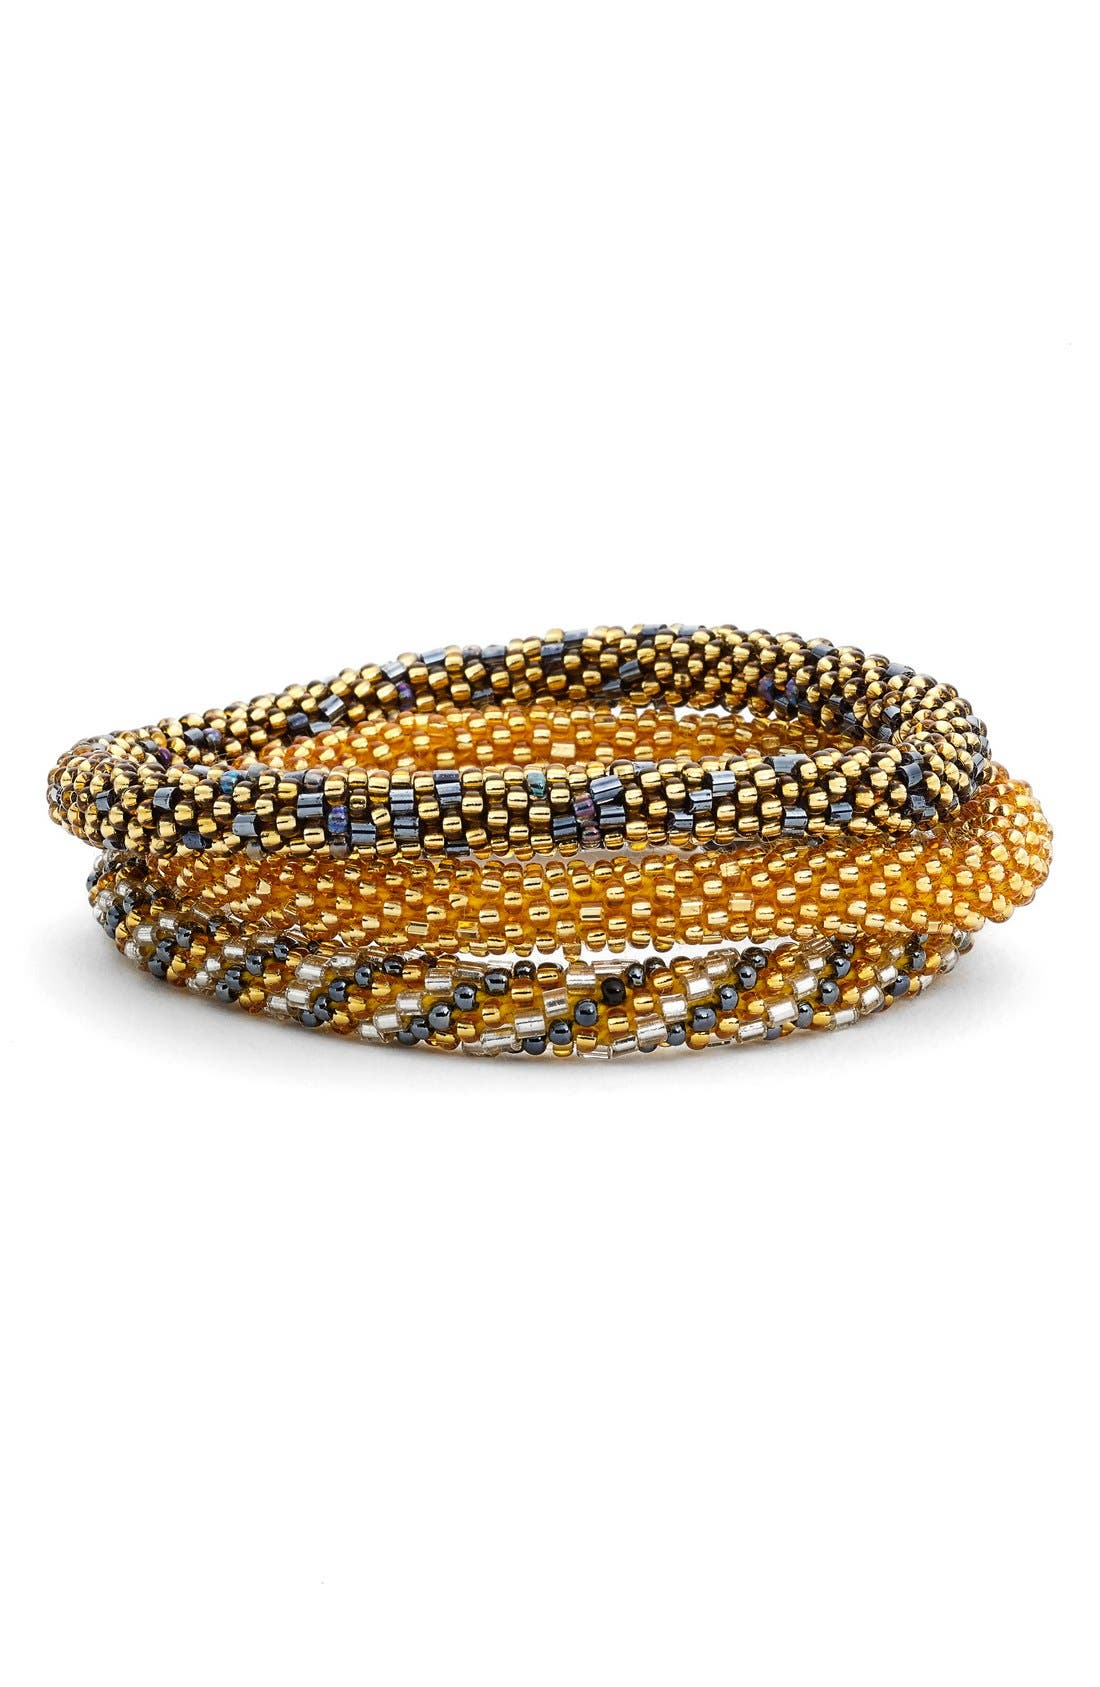 Alternate Image 1 Selected - Aid Through Trade Roll-On® Beaded Stretch Bracelets (Set of 3)